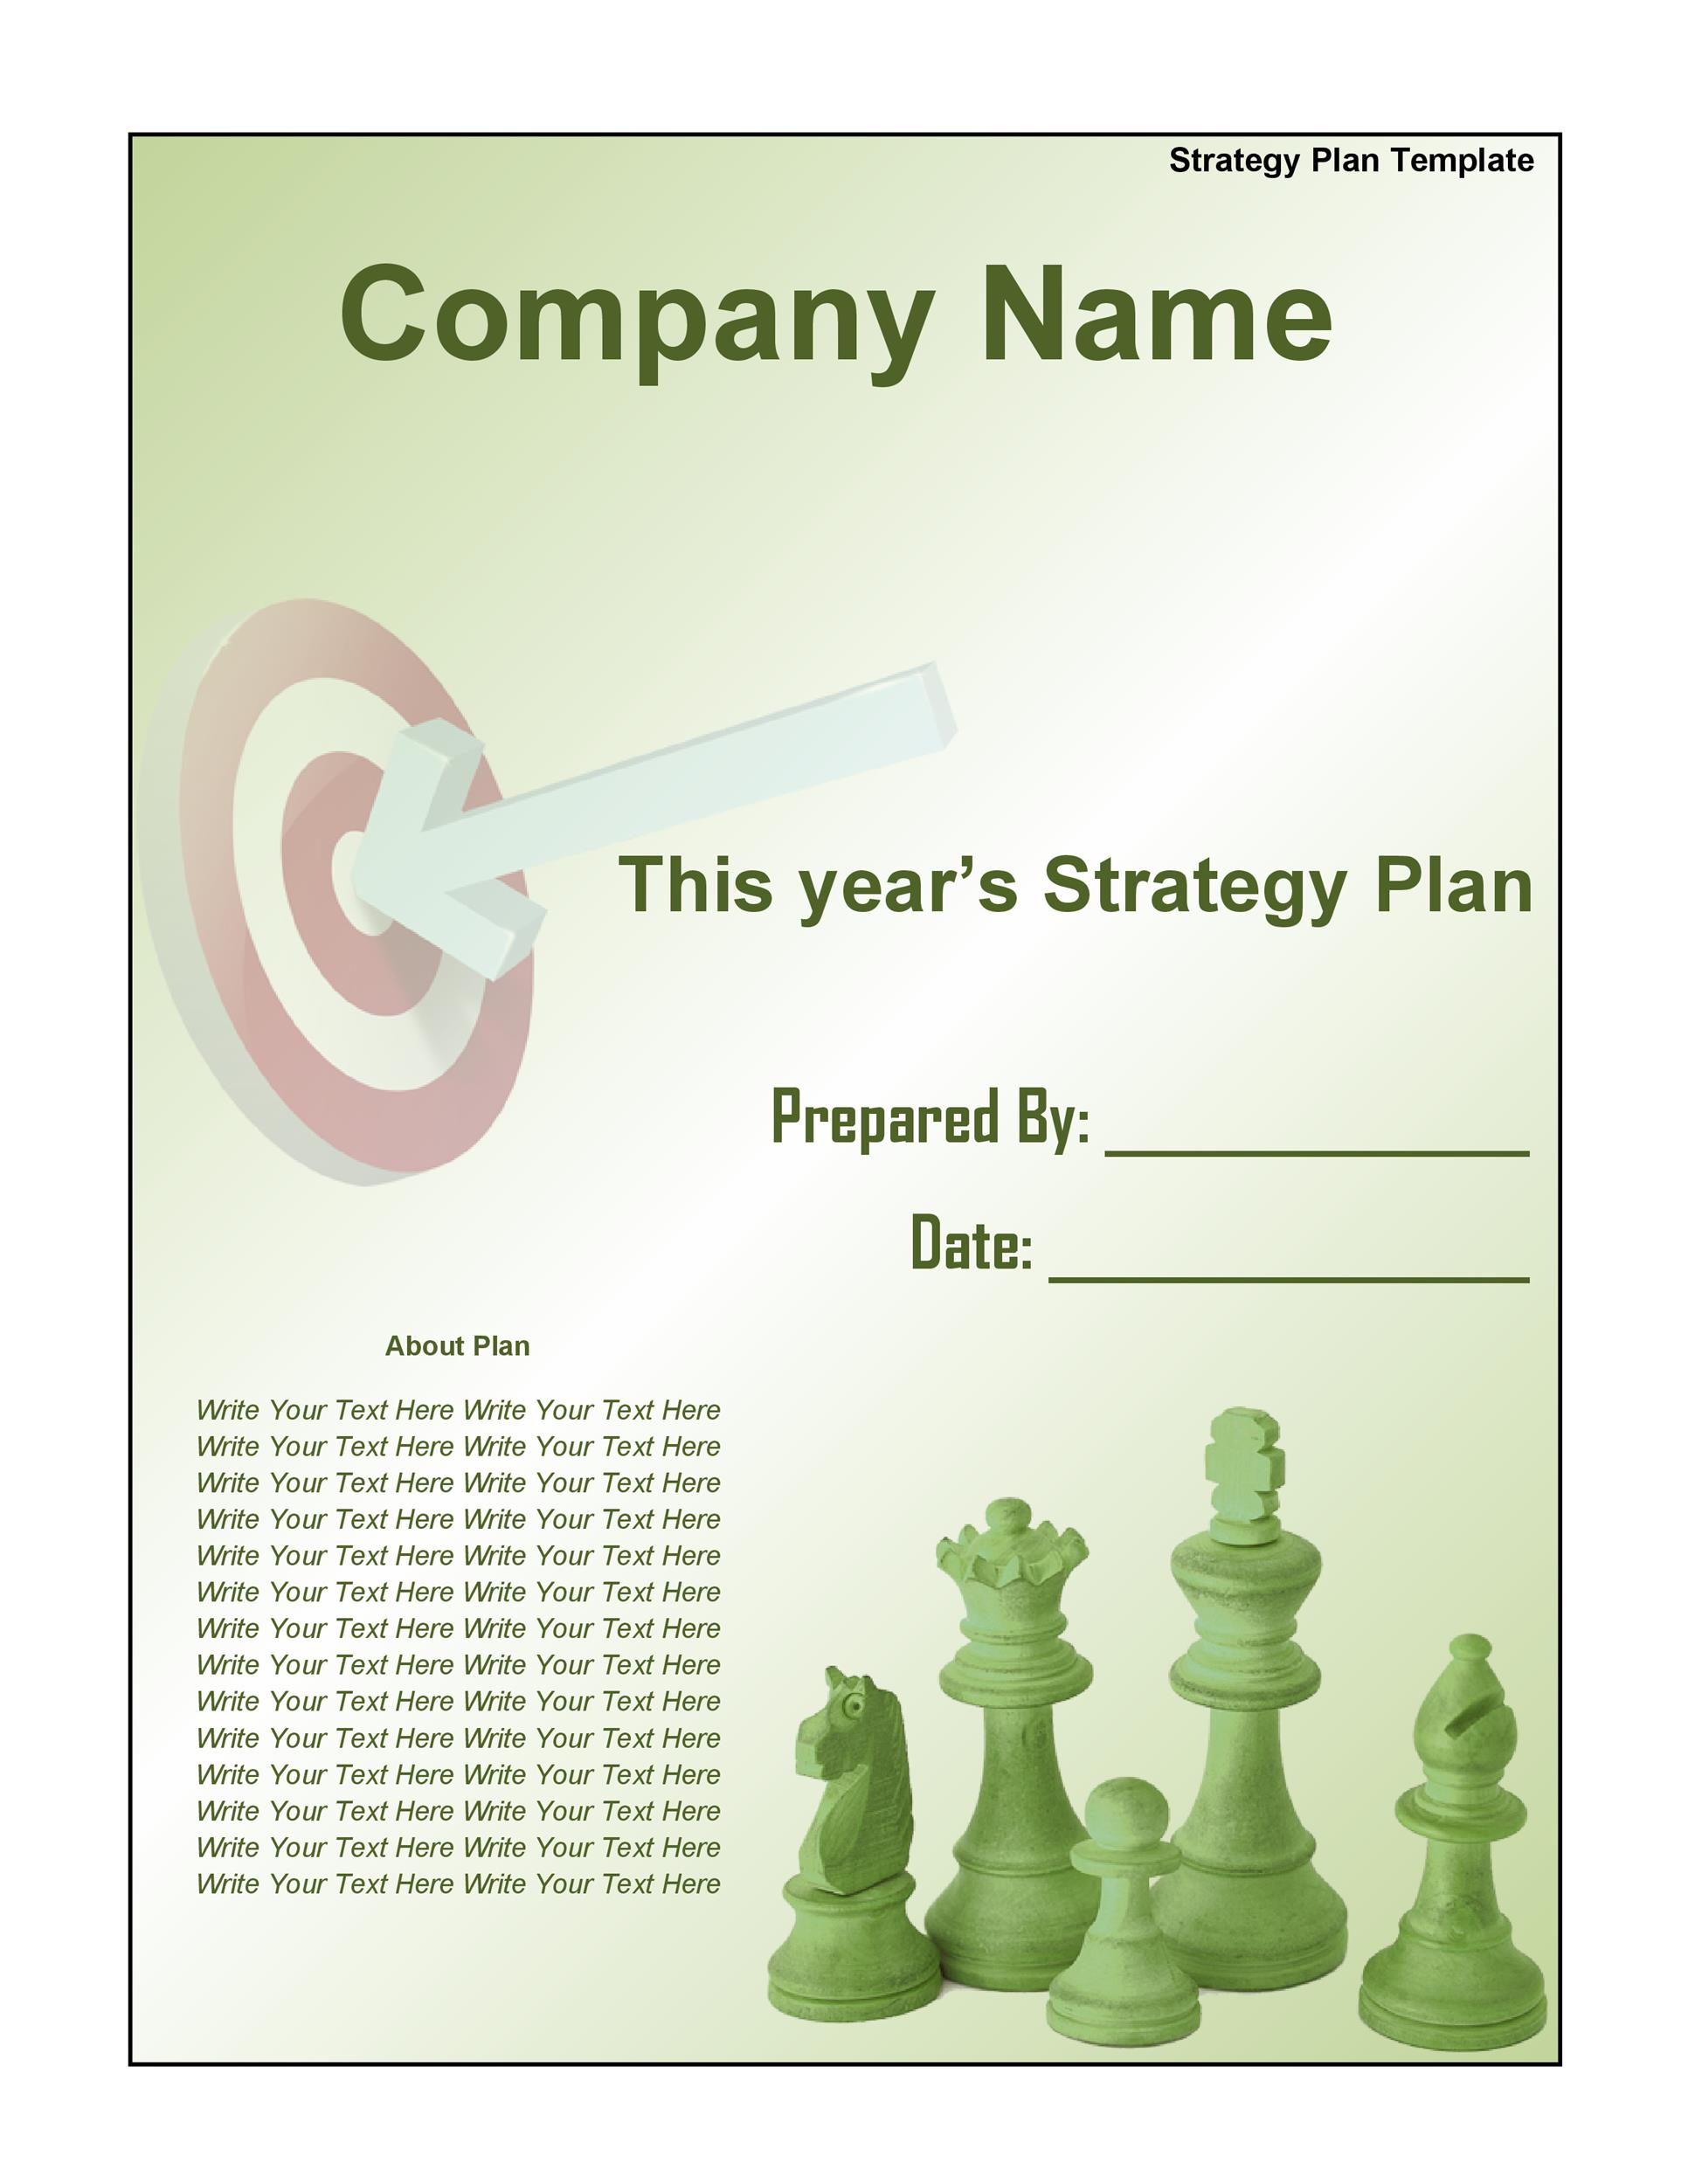 Free Strategic Plan Template 06